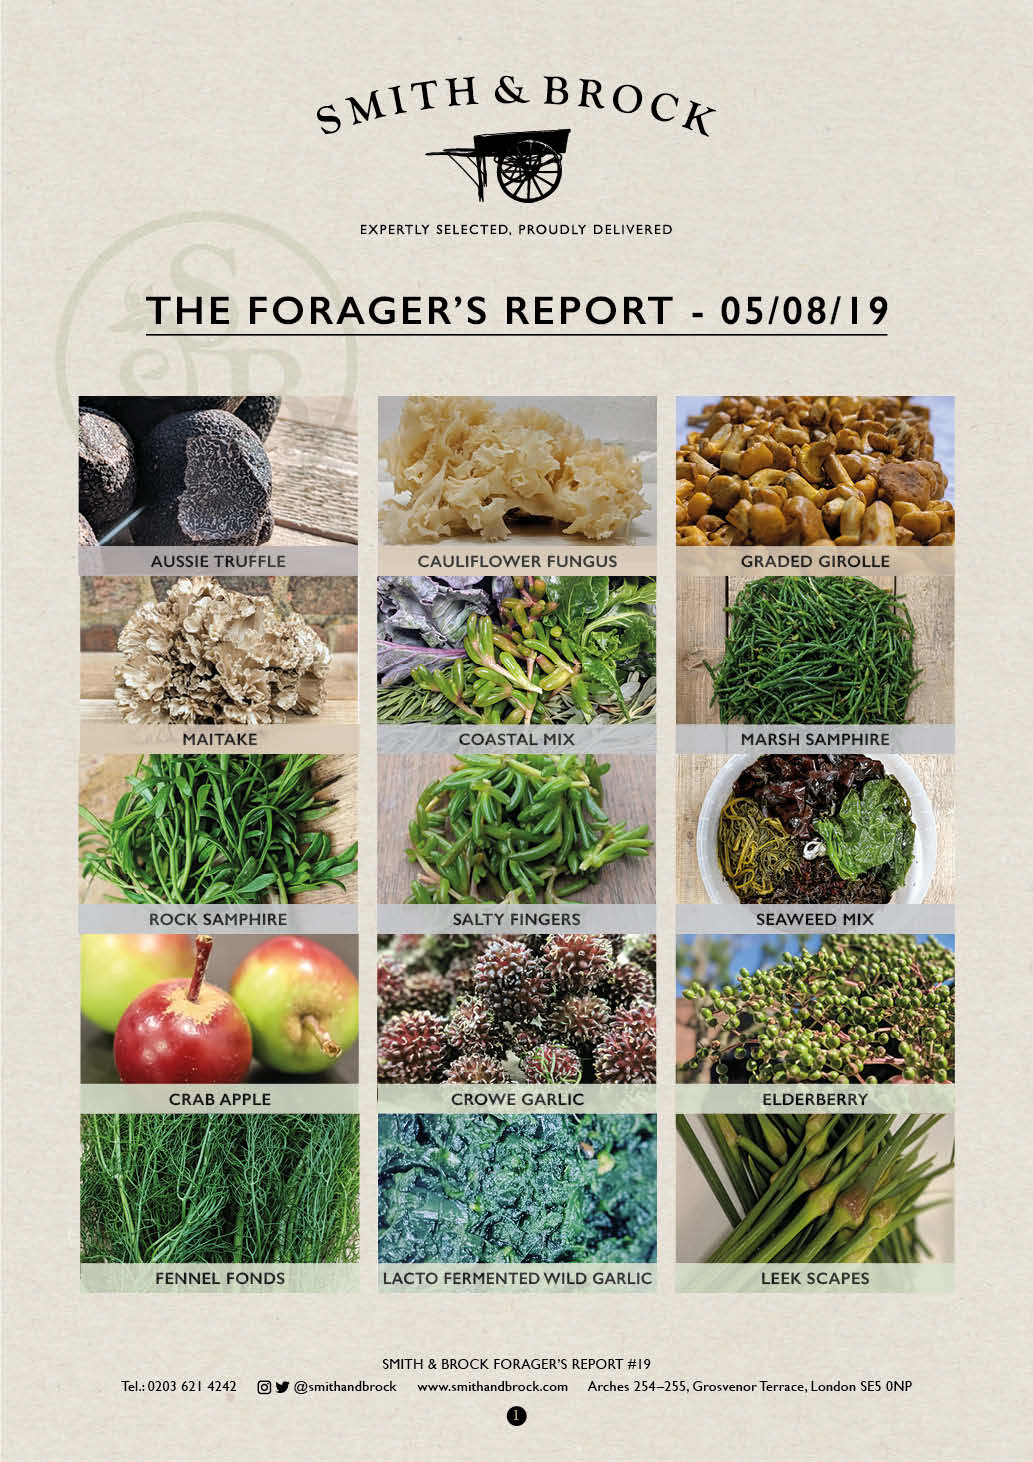 Smith Brock Foraged Products Report 05 July 2019 19